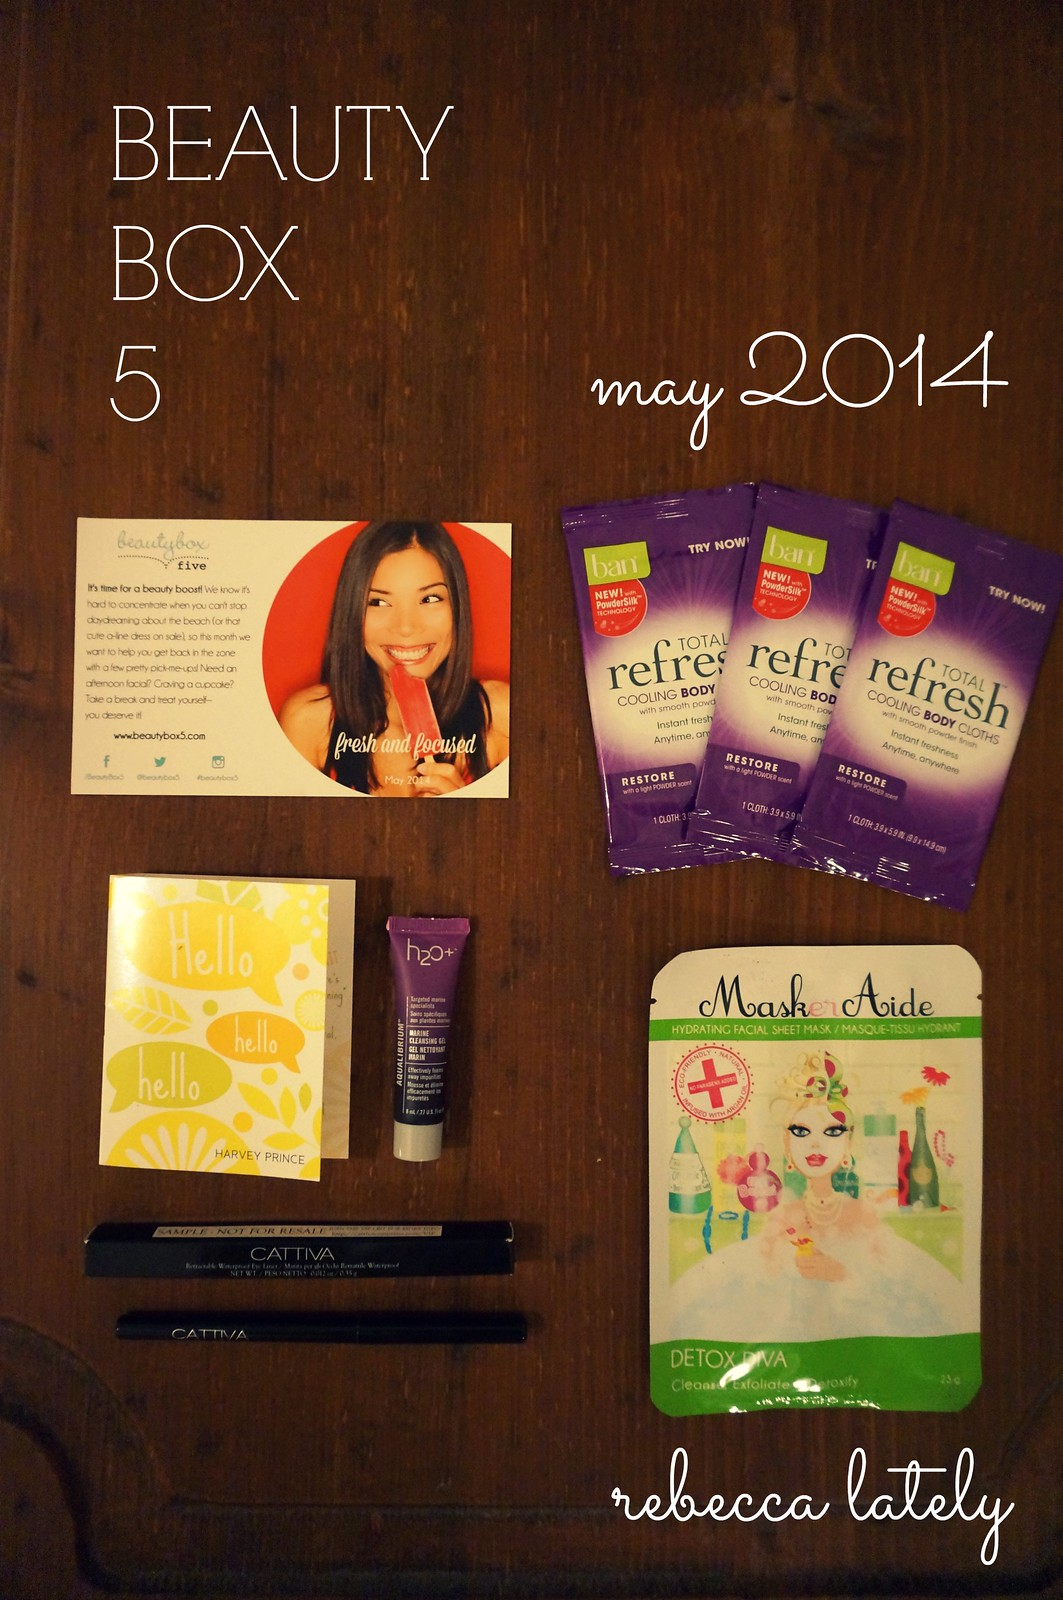 Beauty Box 5 May 2014